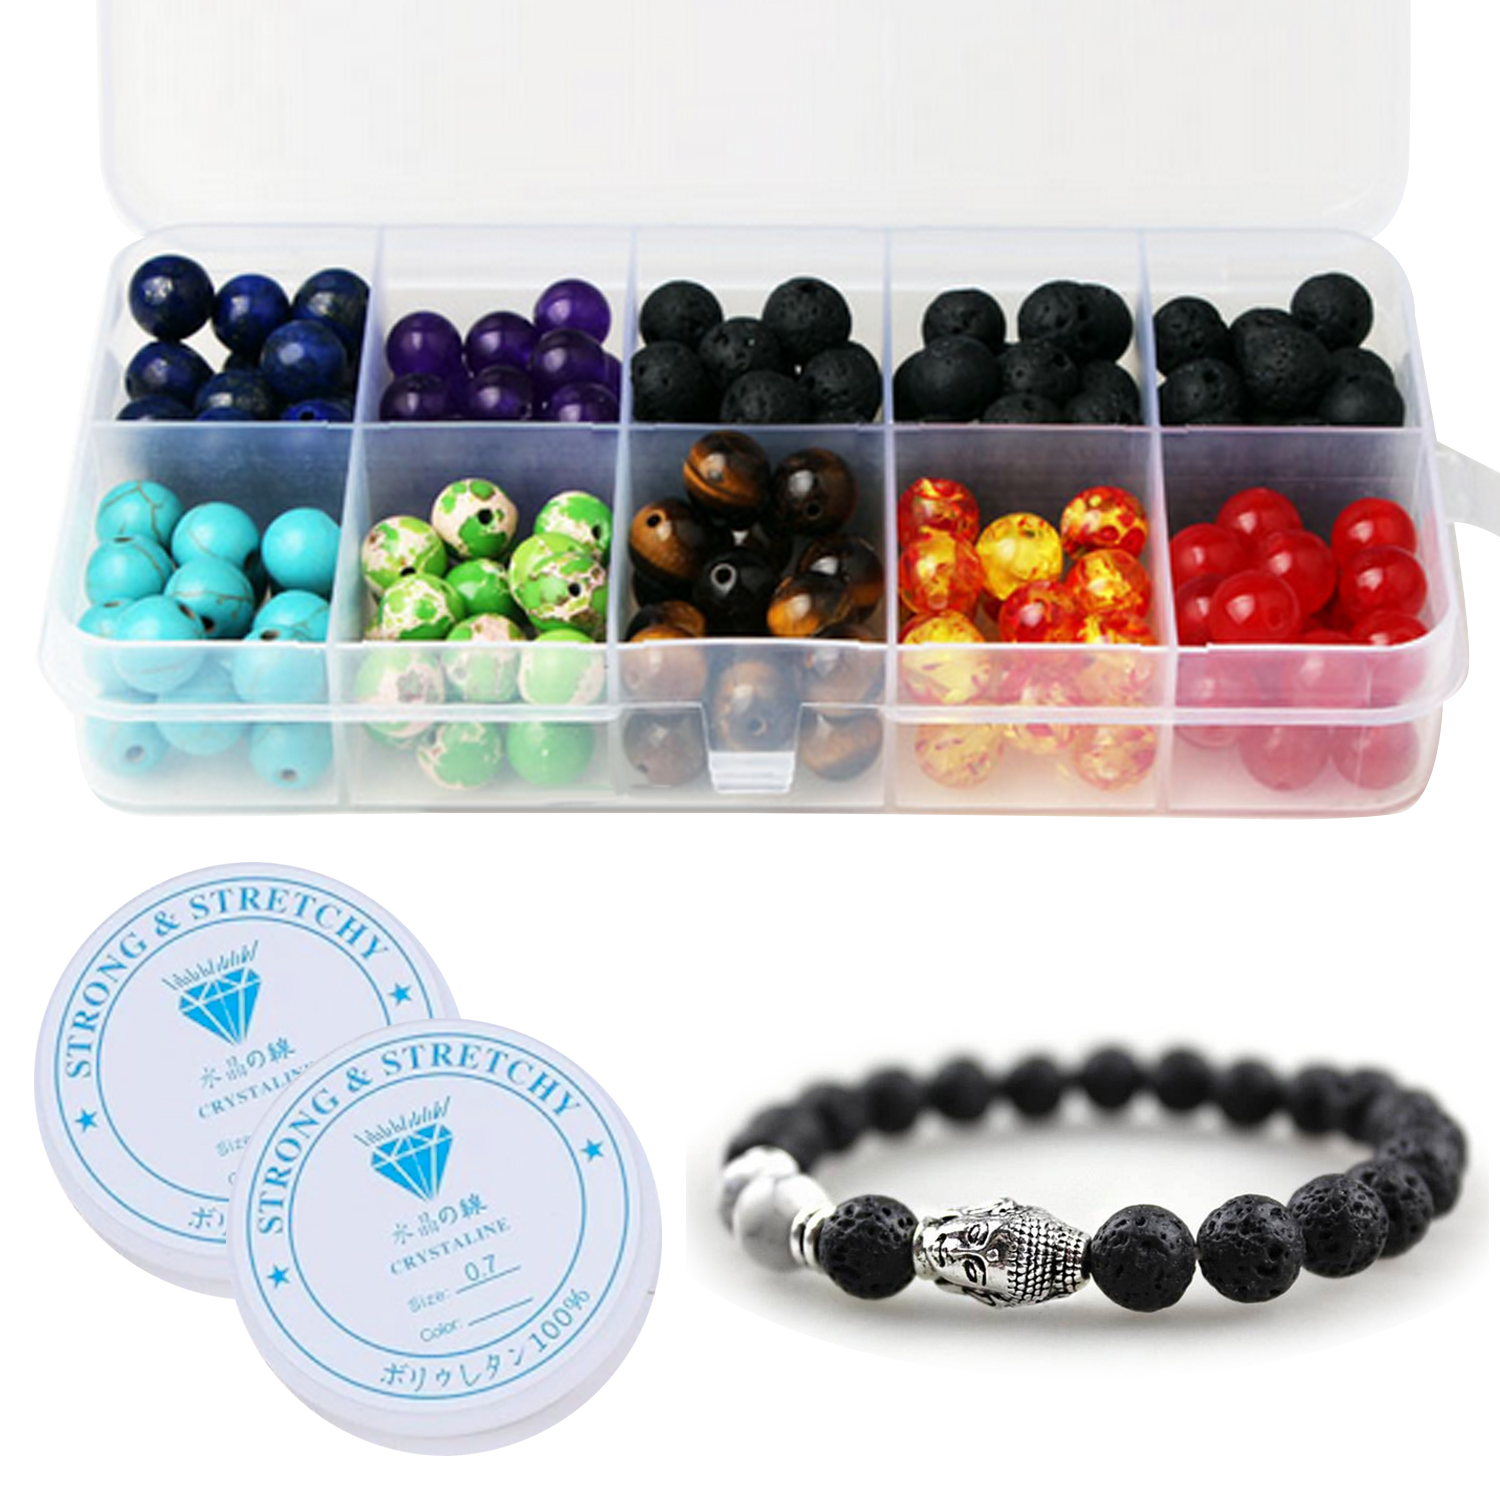 200Pcs Colorful Chakra Beads Black Lava Rock Stone Loose Beads Set With 2 Roll Crystal String Toy For Girl DIY Bracelet Necklace